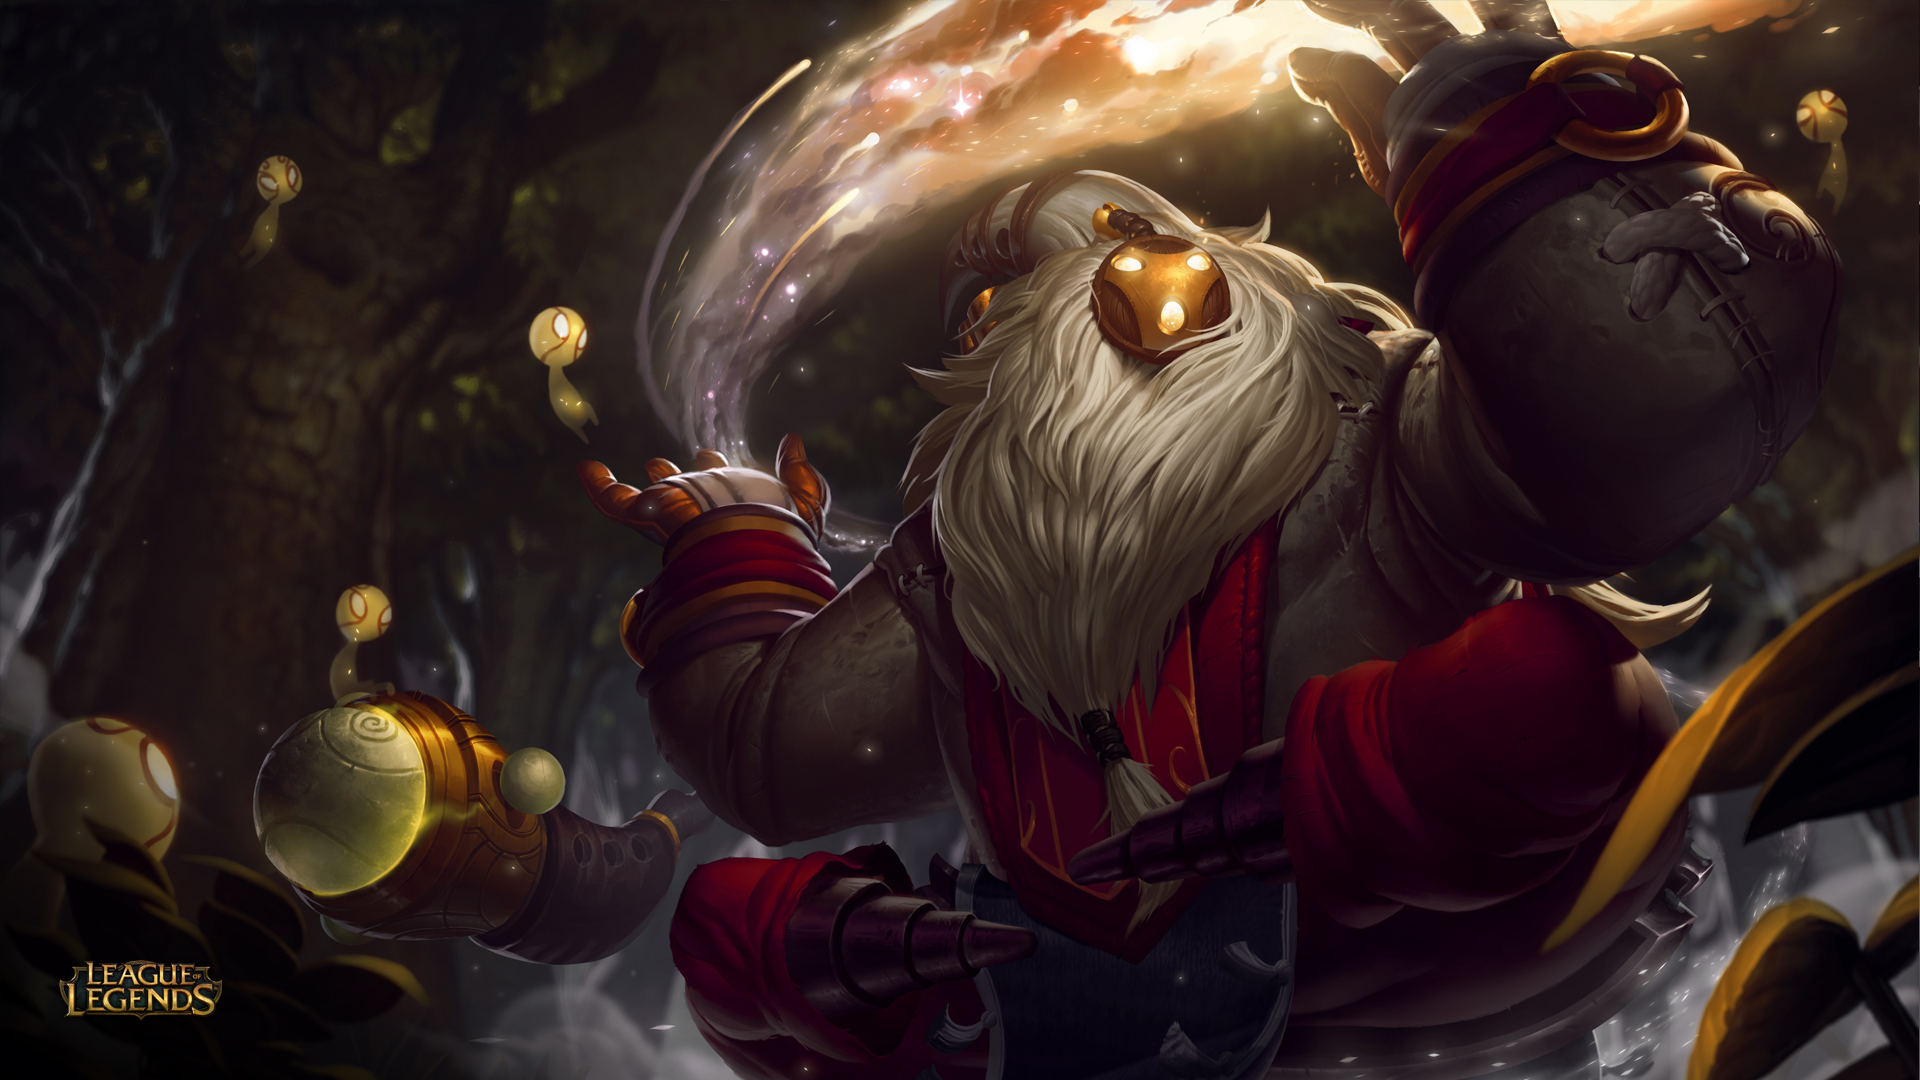 Bard League Of Legends Wallpapers HD 1920x1080